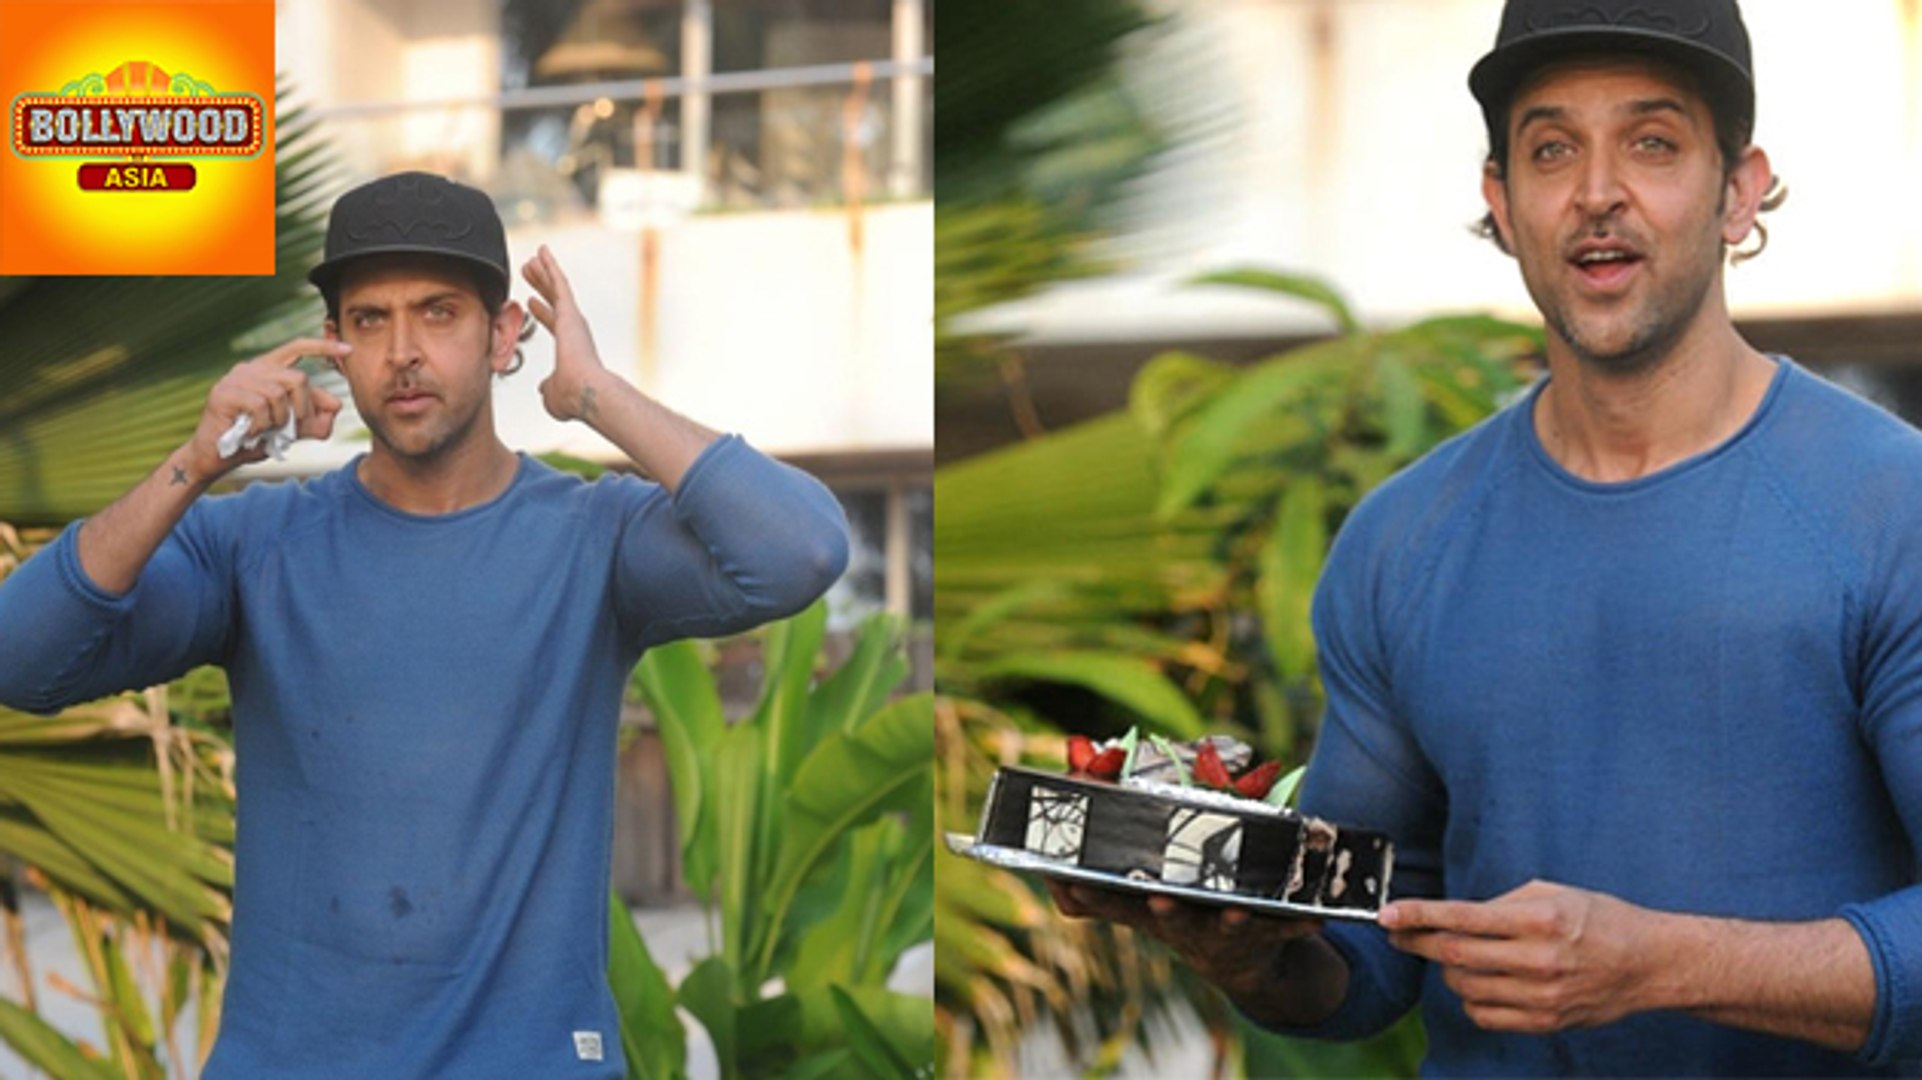 Hrithik Roshan Reveals His Special Birthday Plans | Bollywood Asia